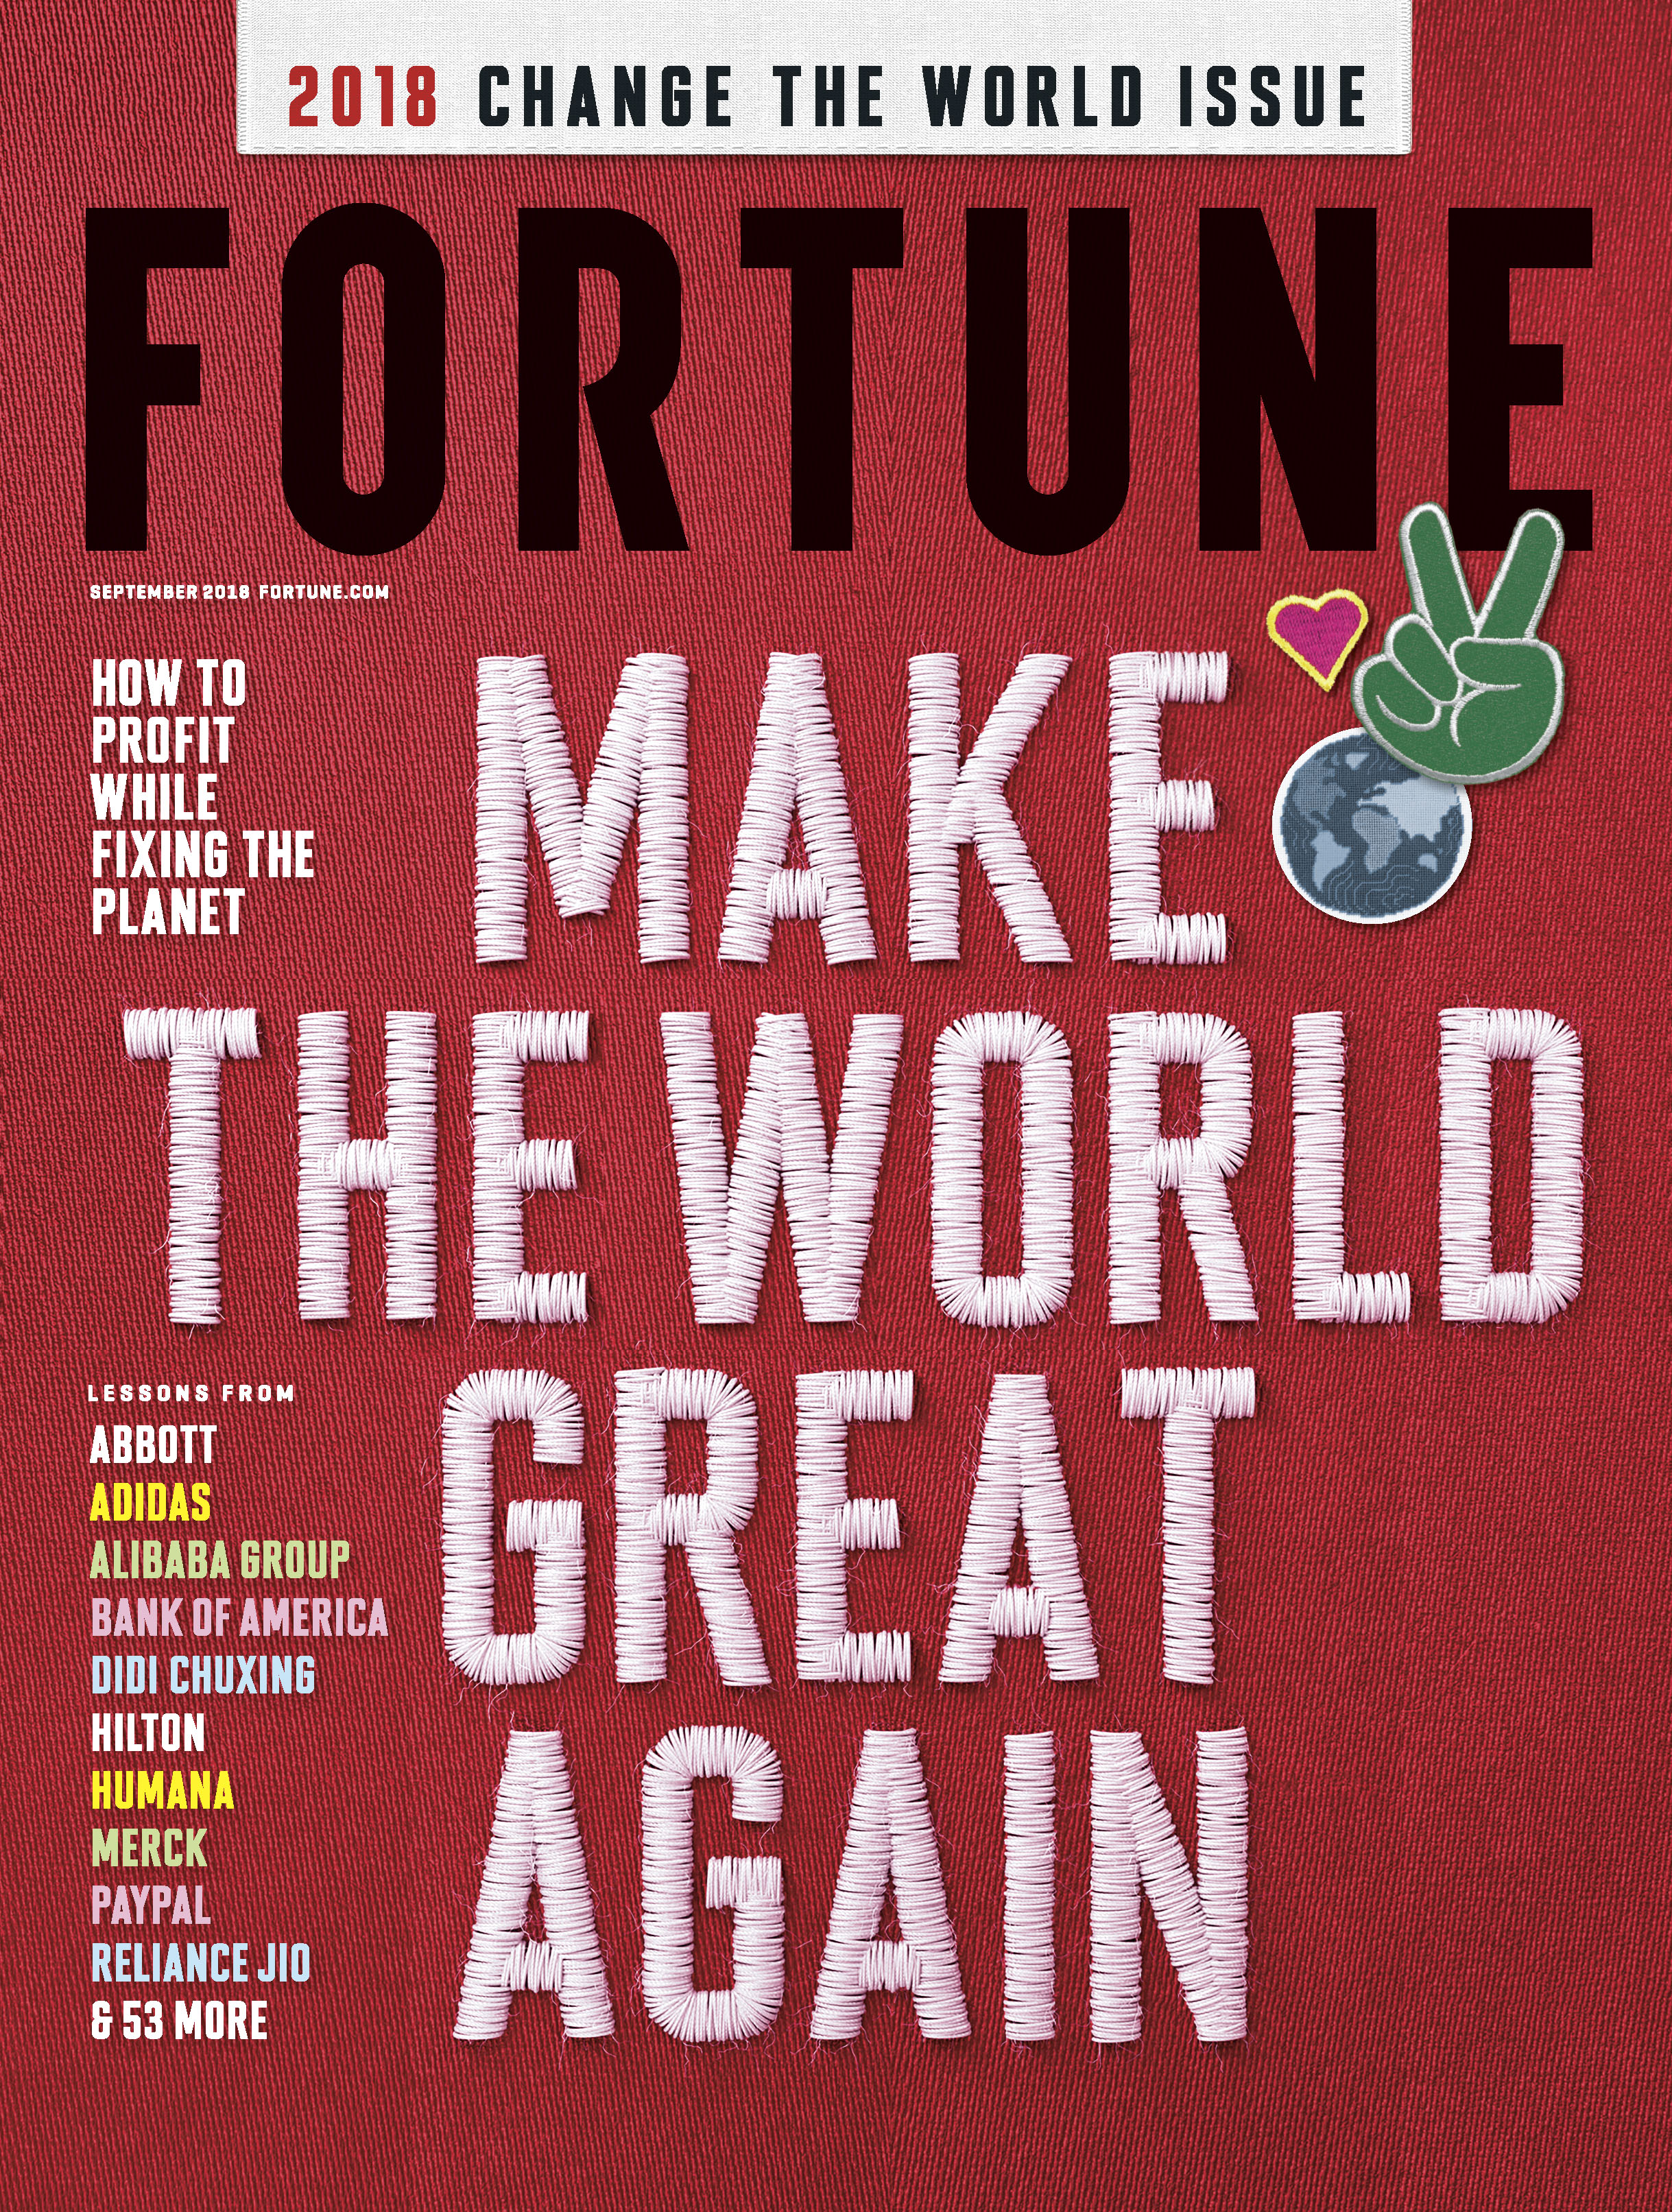 """Fortune Names ABB among Top 10 Companies in """"Change the World"""" List"""